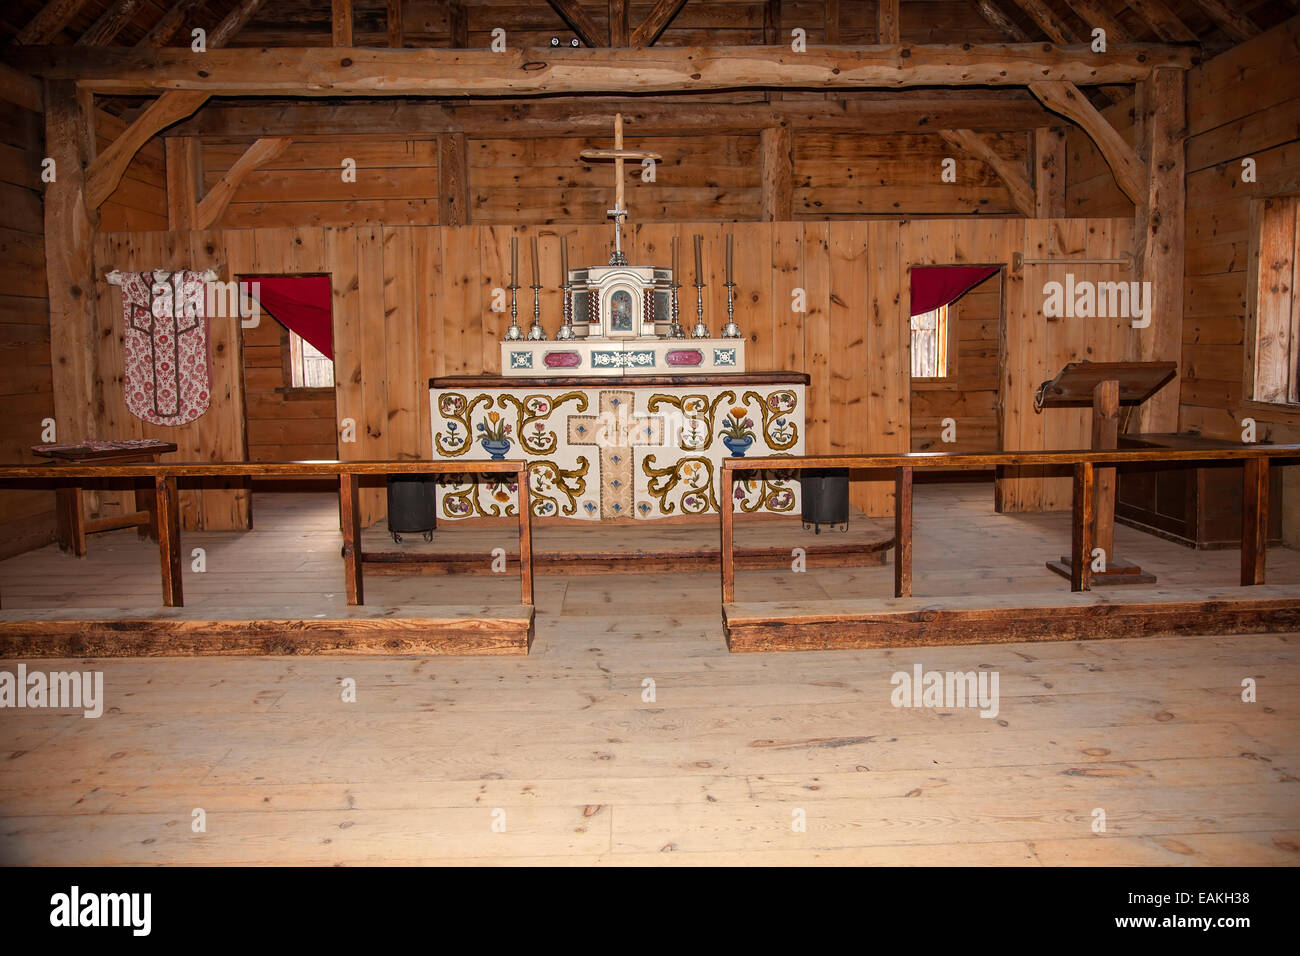 The Chapel at Sainte Marie among the Hurons;Original authentic Native American Indian Village in Midland;Ontario;Canada - Stock Image